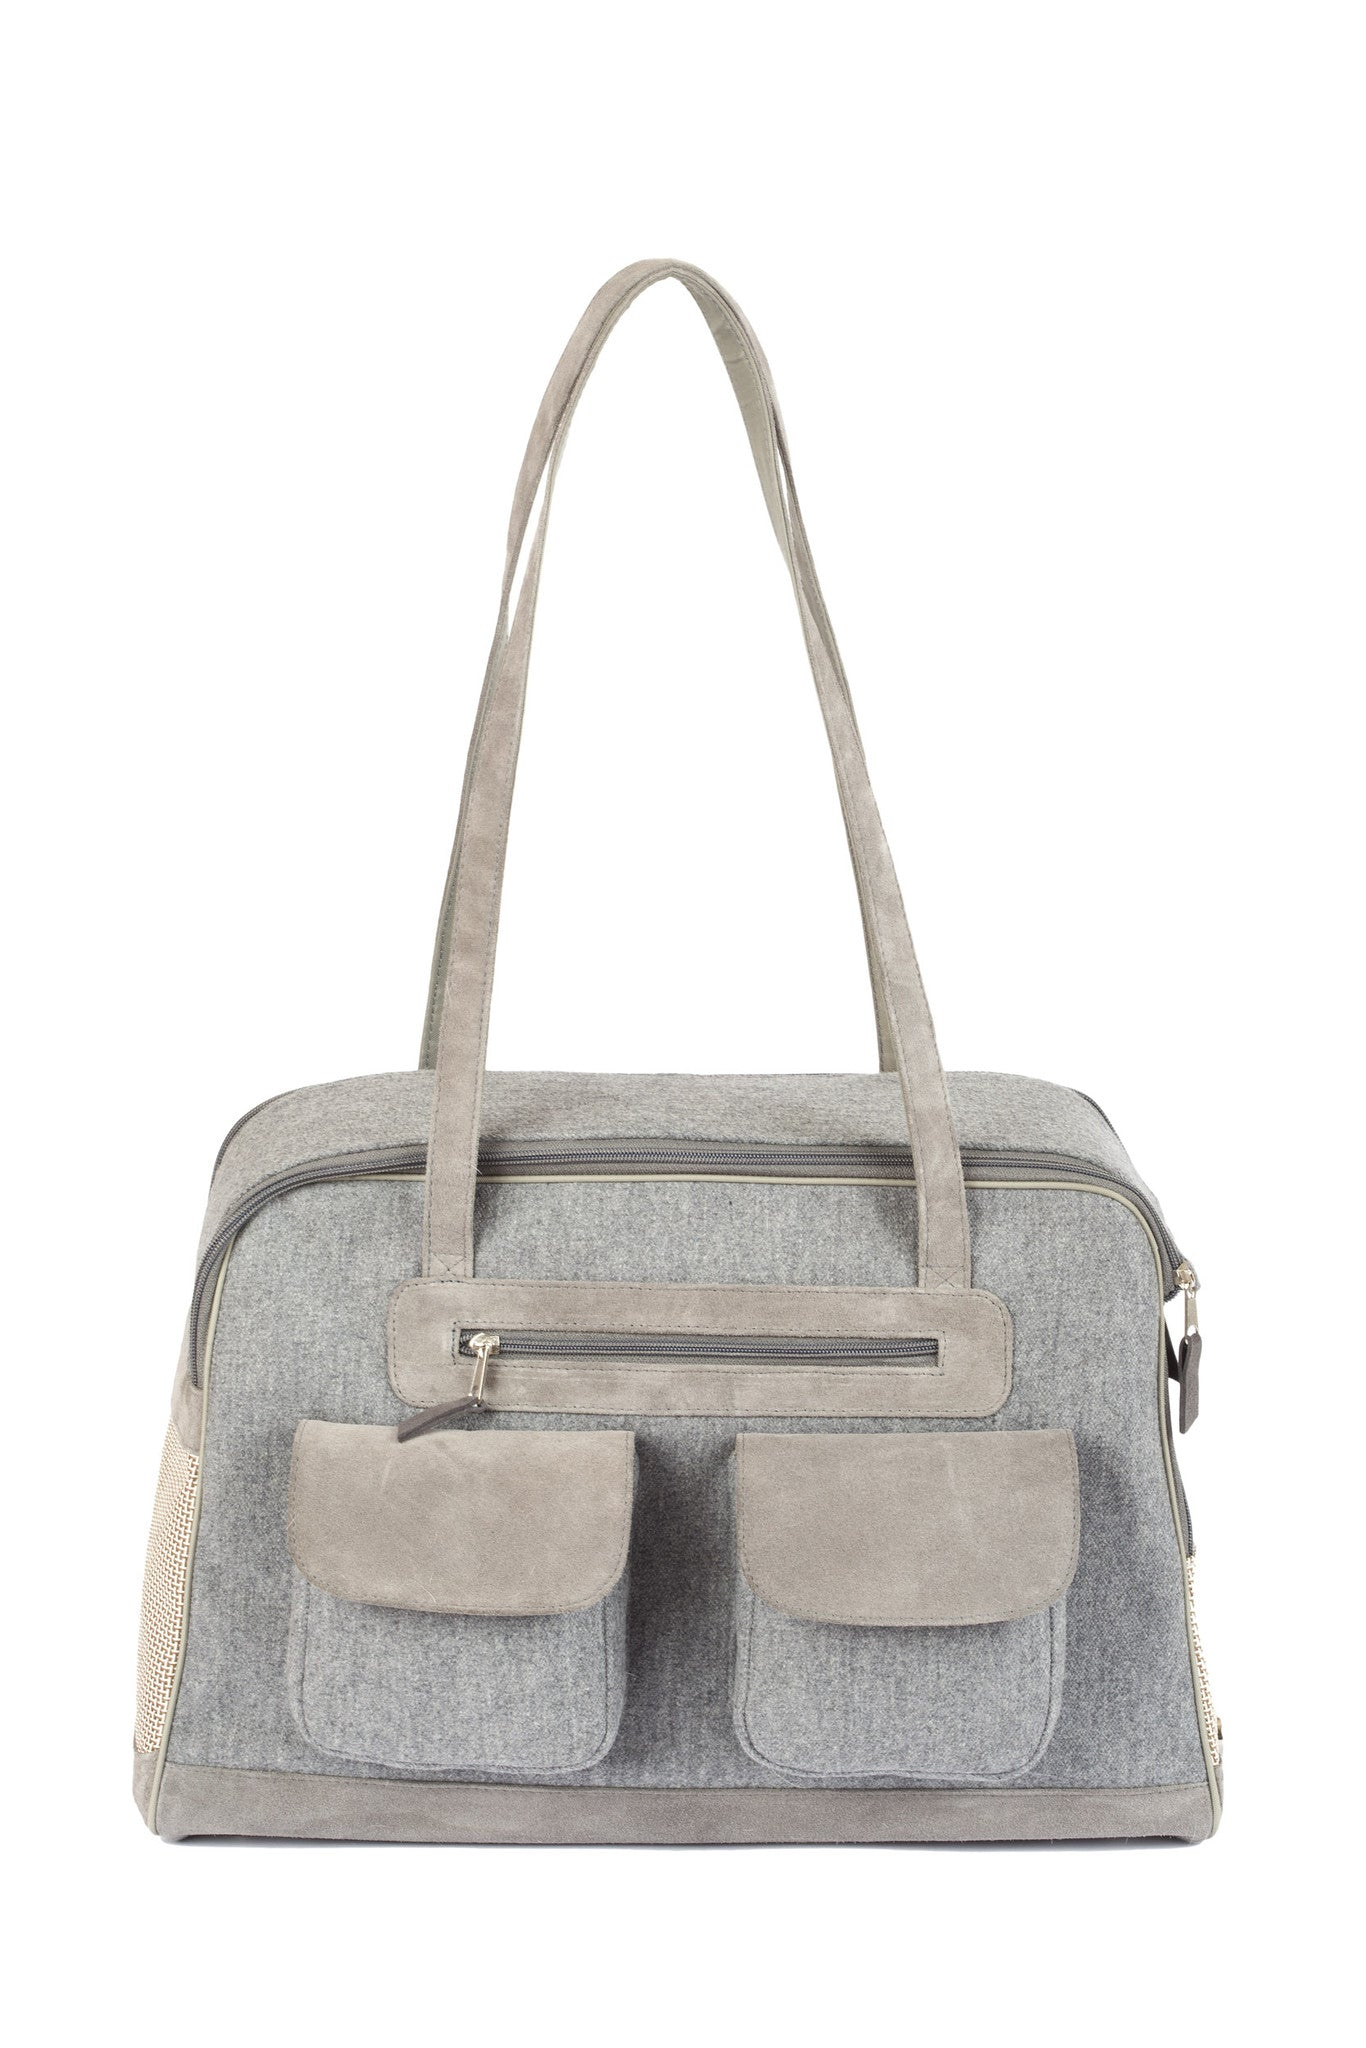 Fall - Dog Carrier - Cashmere/Wool Blend w/ Leather Straps - 4 Color Options